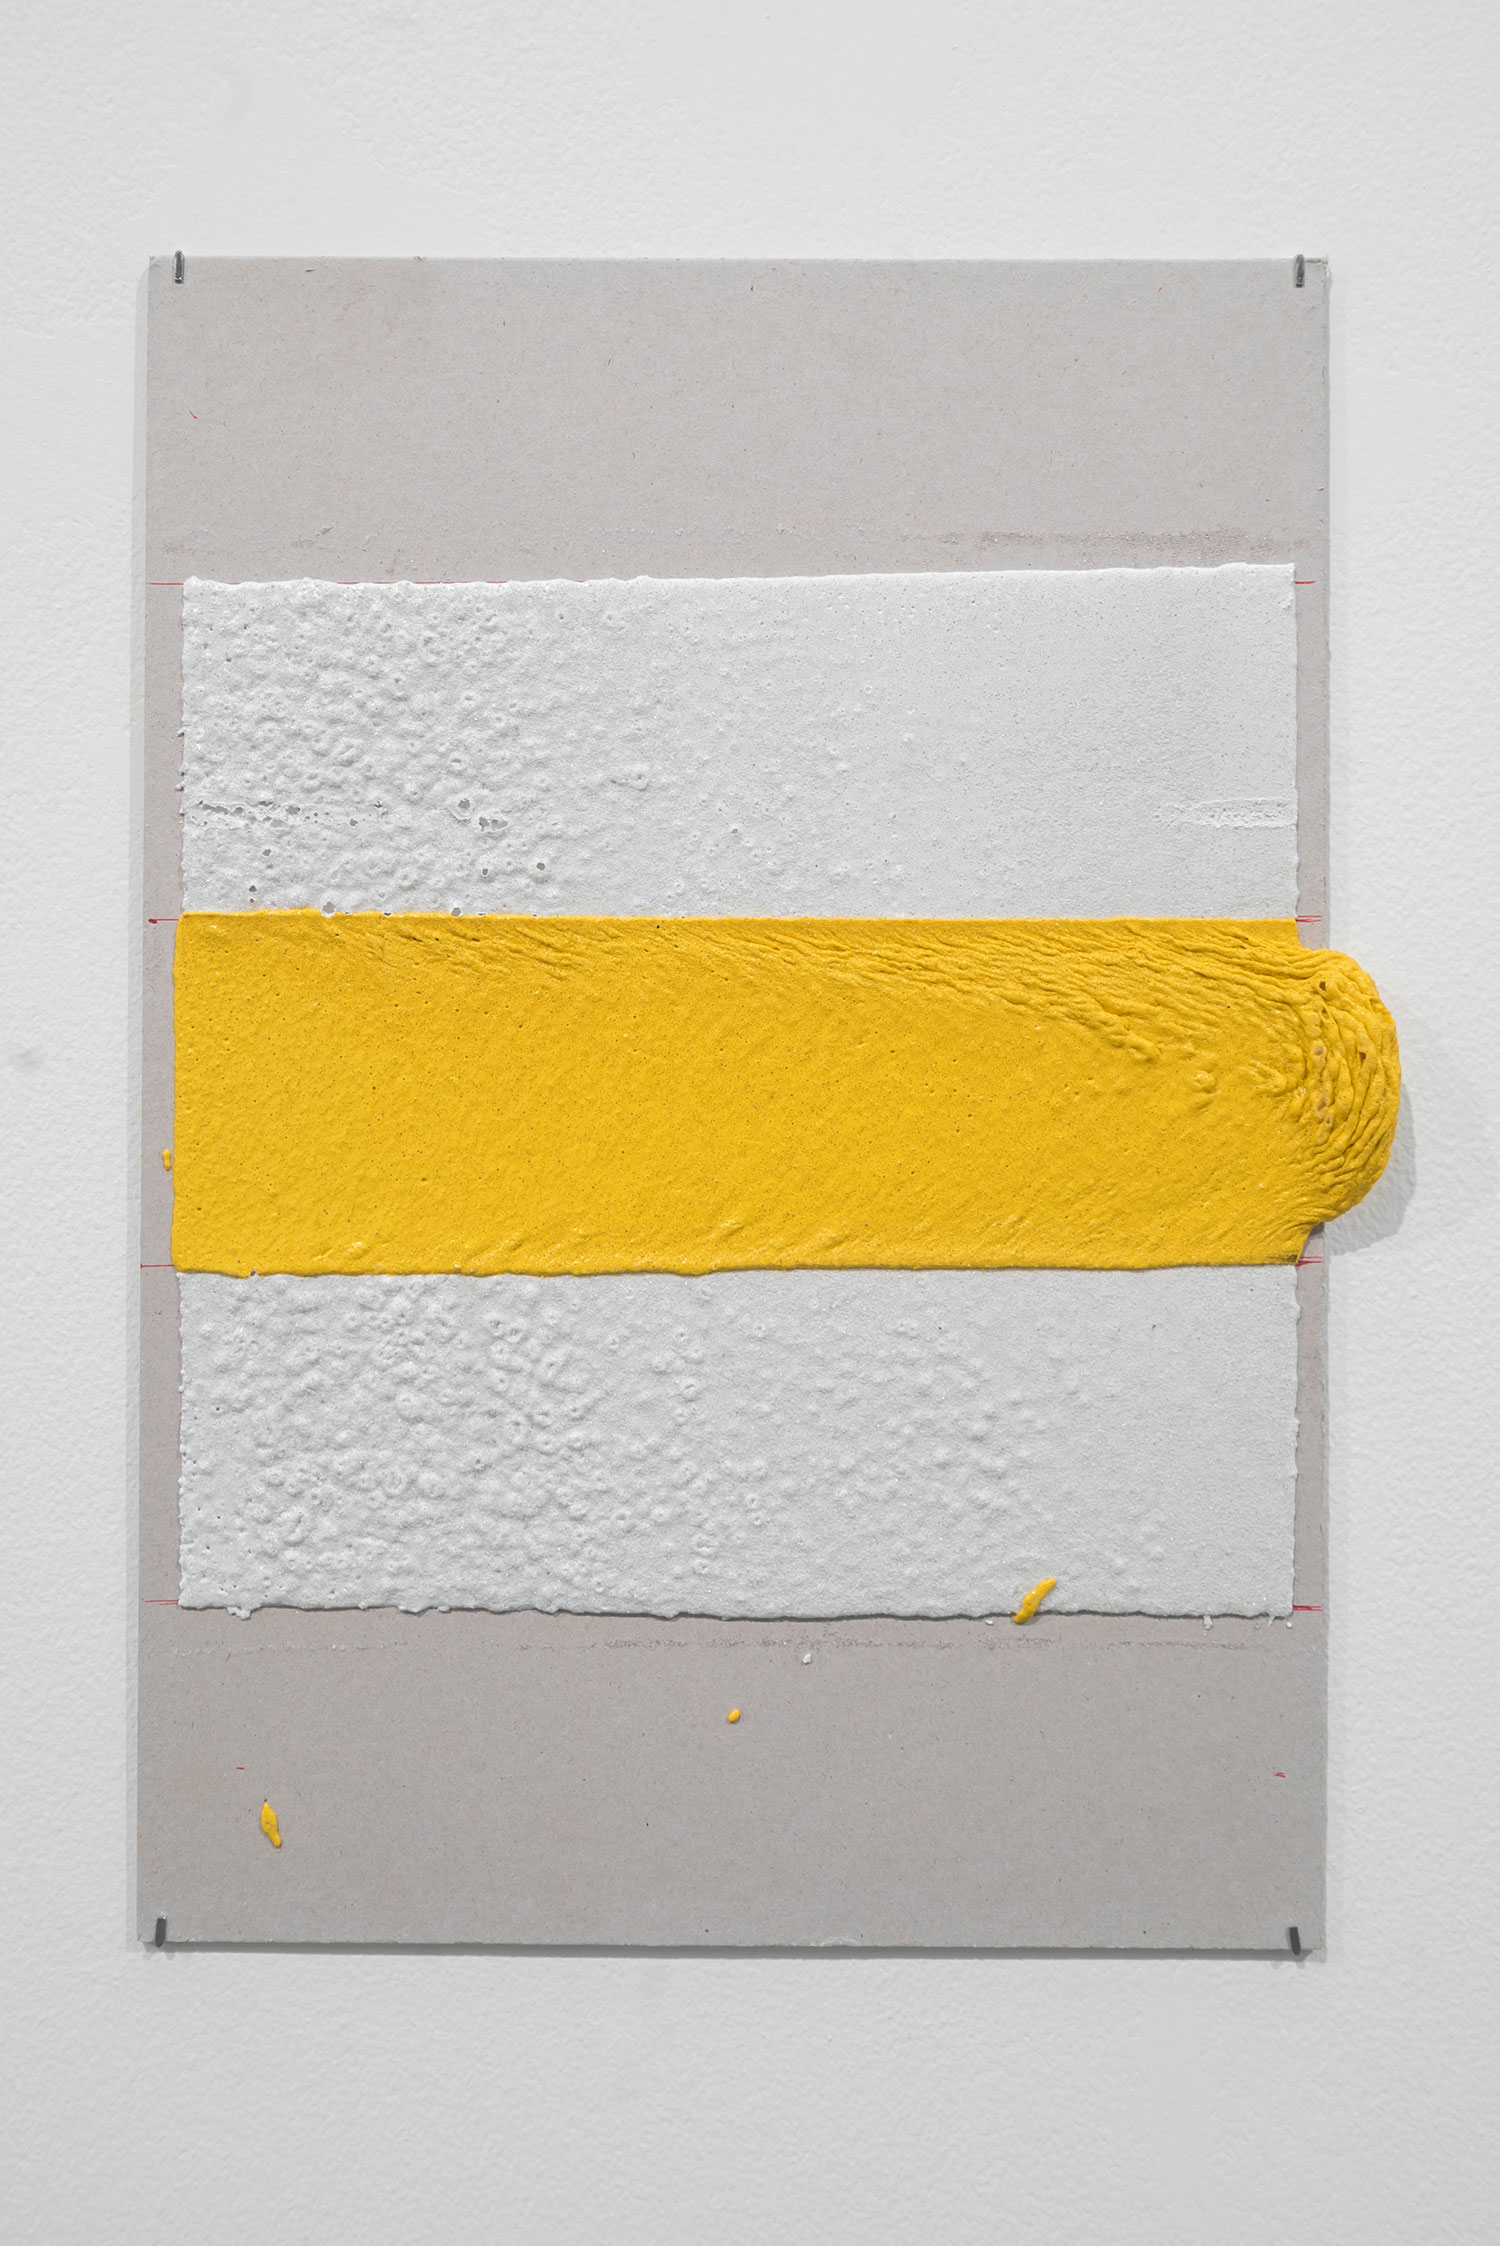 300mm (W), 100mm (W), 1.5mm (T), White, Yellow, Random mark, hand marking, remarking, Al Barsha South, Unnamed street,  2017  Thermoplastic paint and reflective glass particles on grey board  35 x 50 cm